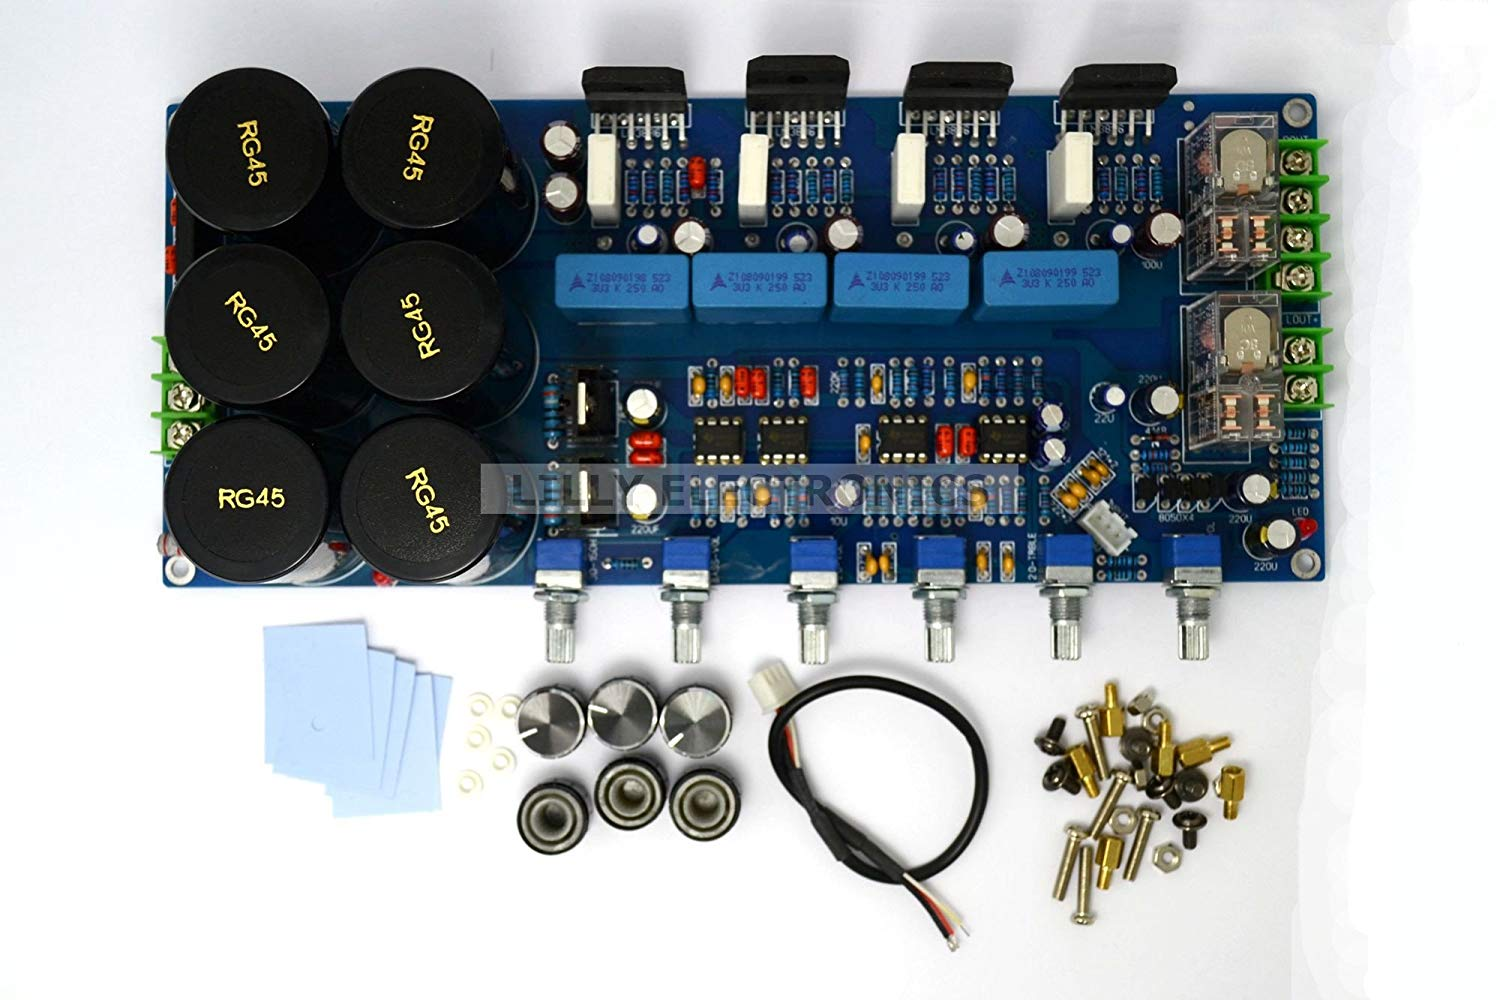 Subwoofer Amplifier With 30w Output Power